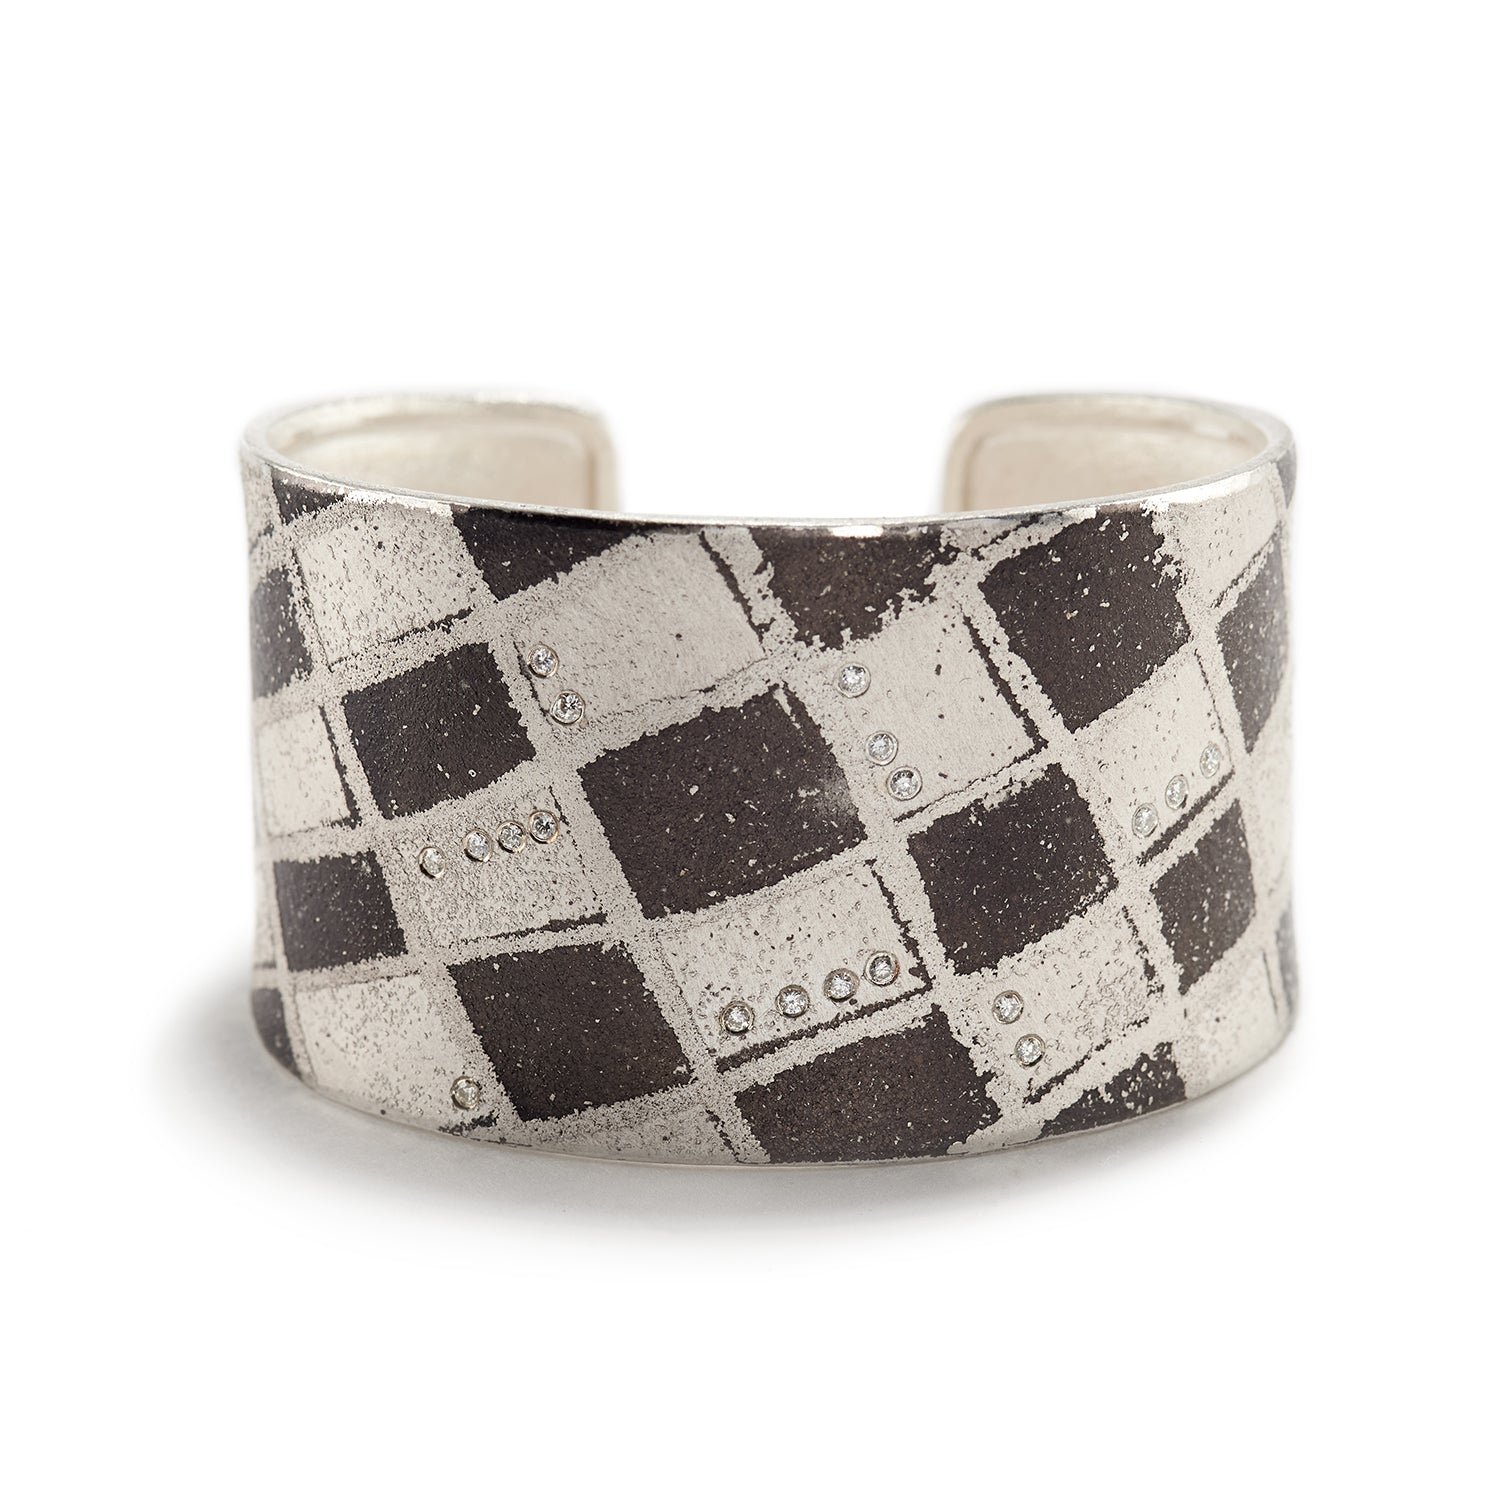 Palladium, Diamond & Silver Cuff